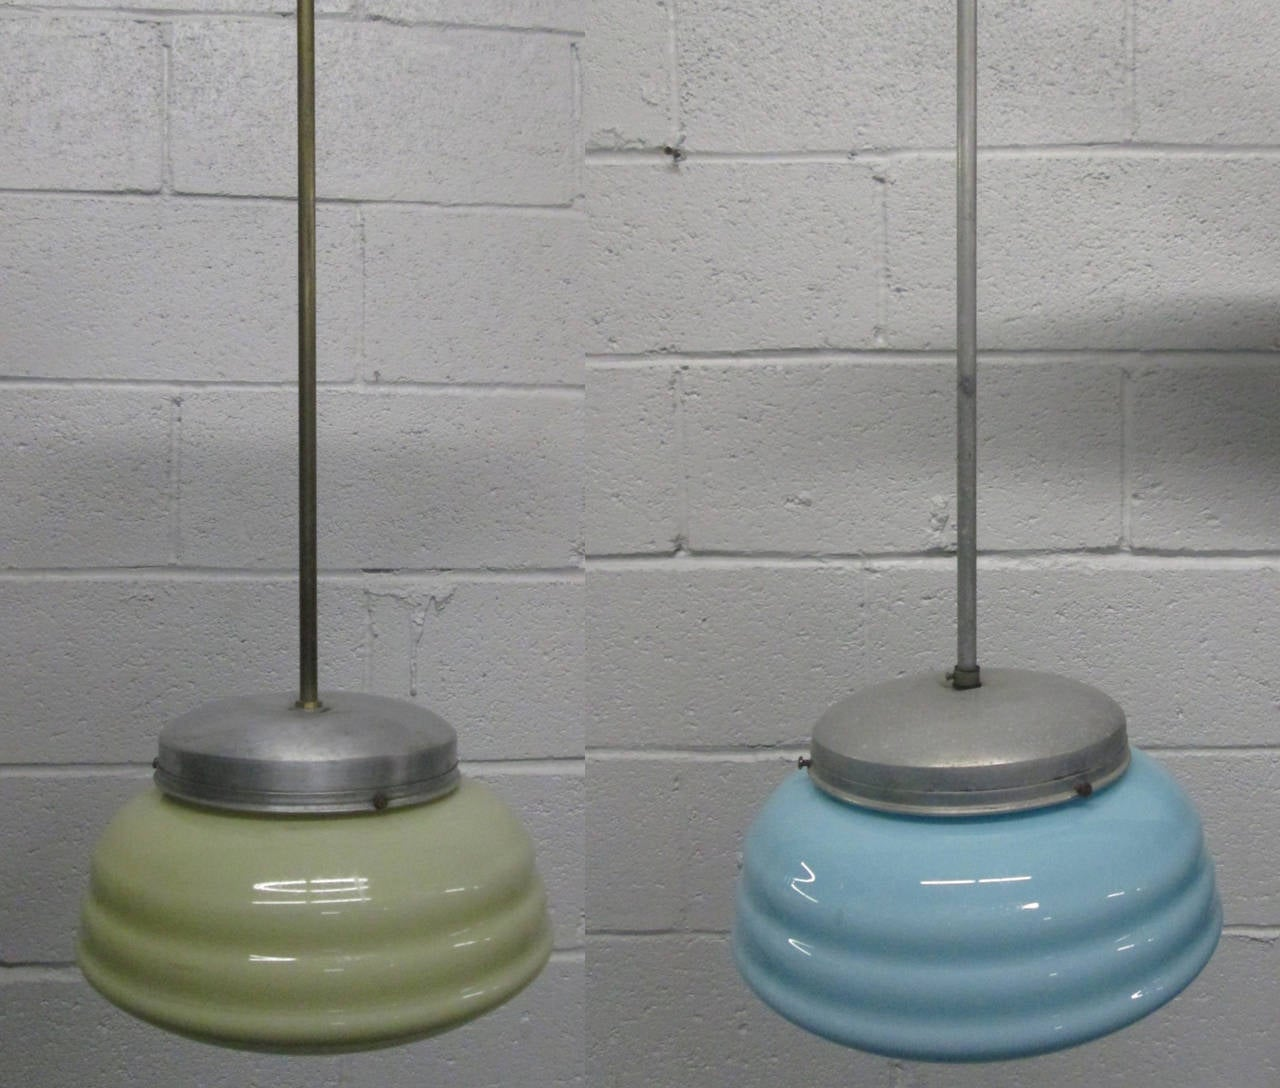 3 Italian Aluminum and Glass Light Fixtures. Two are light yellow and one is light blue. Perfect for a cafe or dining area.